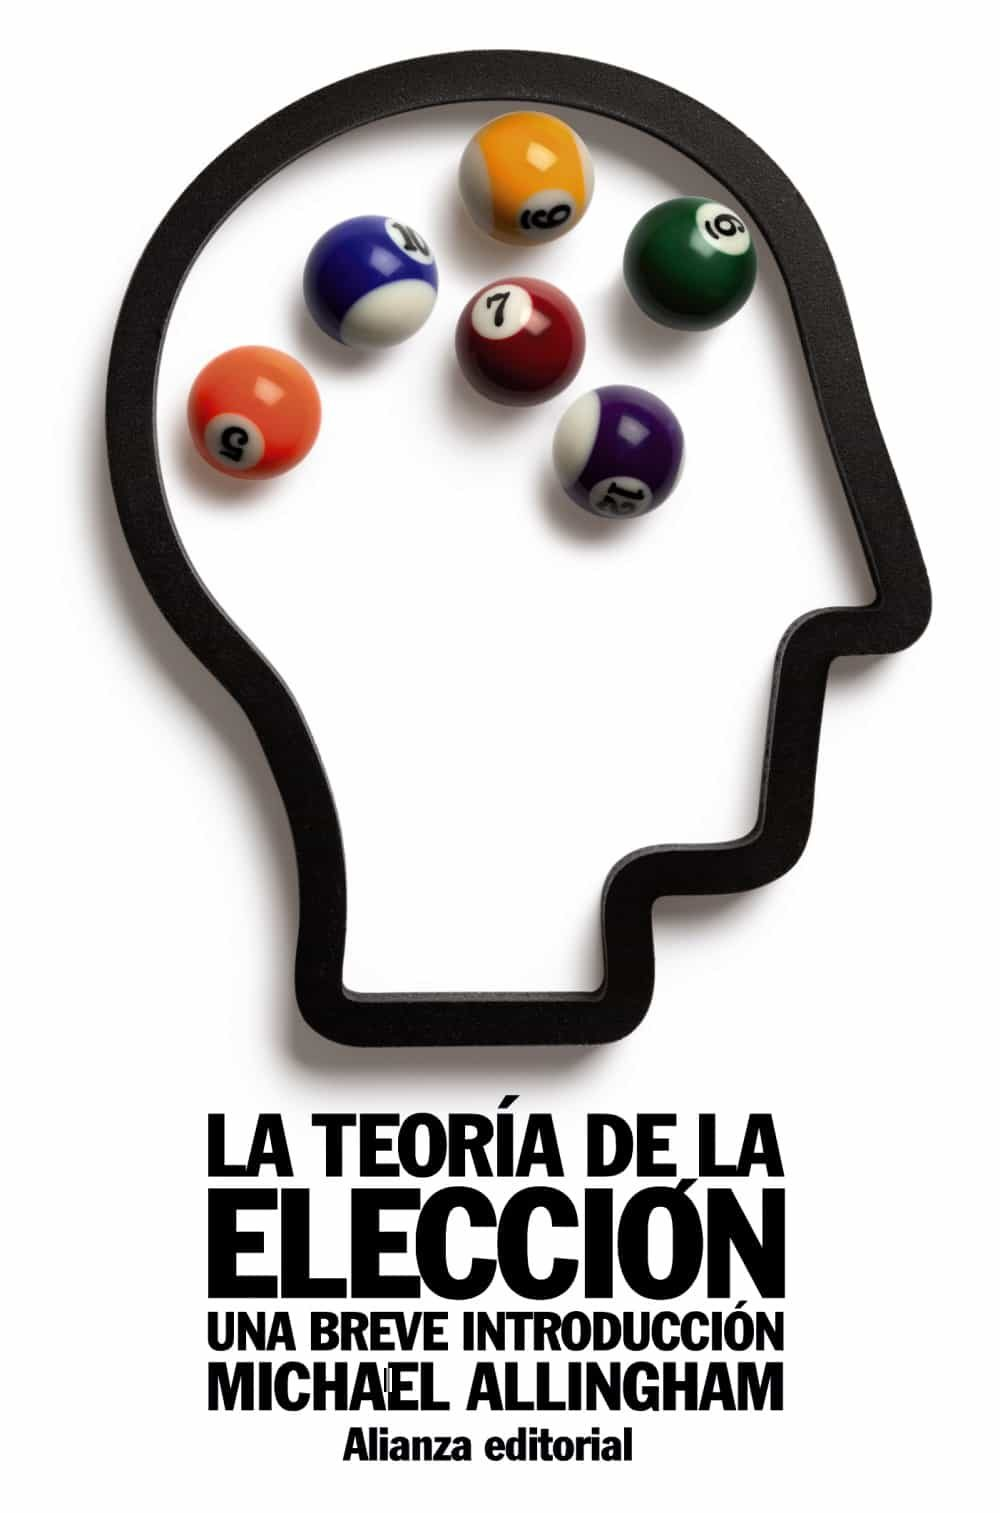 la teoria de la eleccion: una breve introduccion-michael allingham-9788420652825